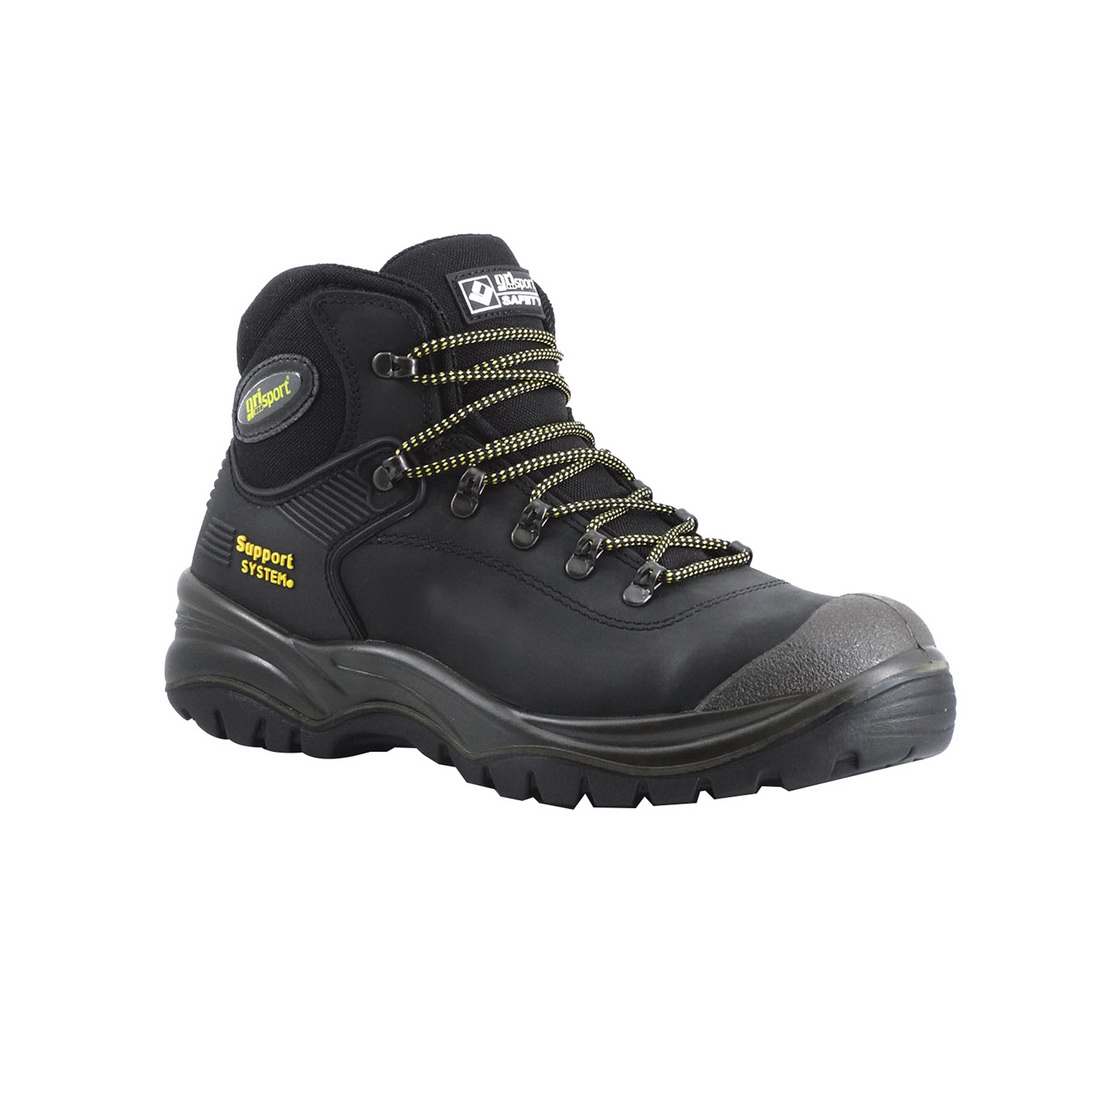 Contractor Safety Boot Size 7 Black Dakar Leather